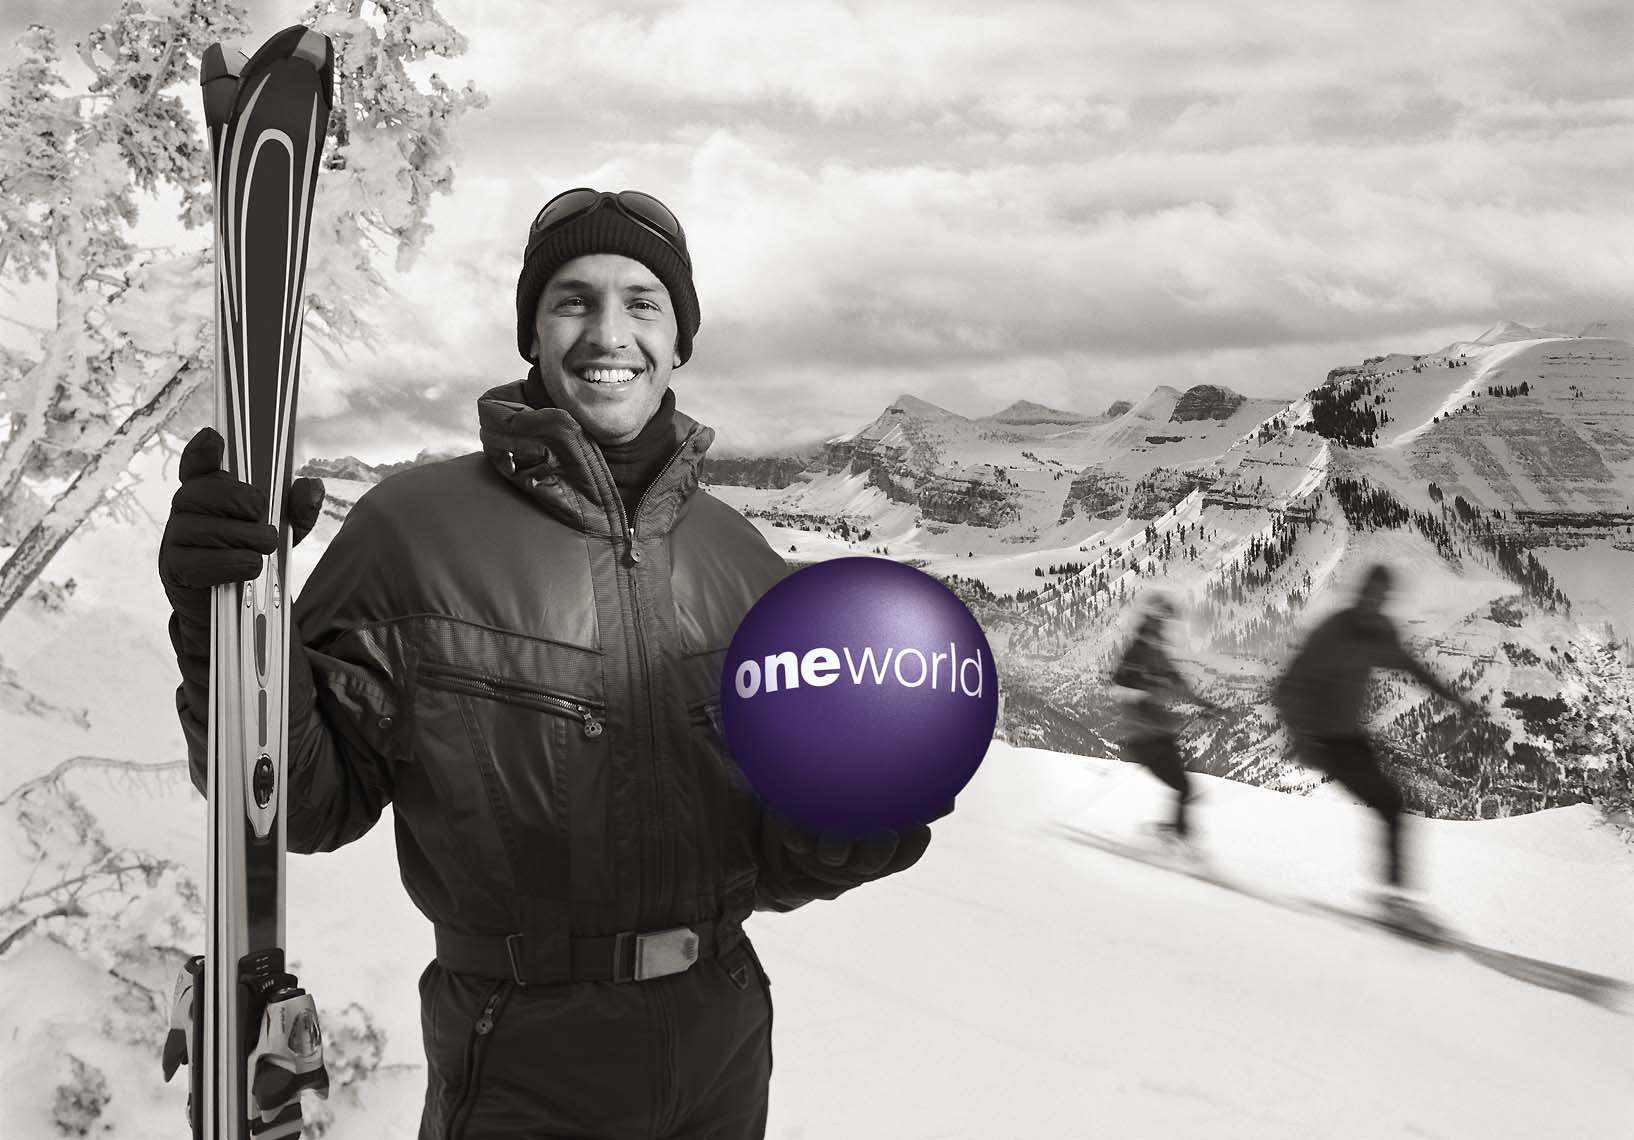 OneWorld_3-Skier SharpEdge 05